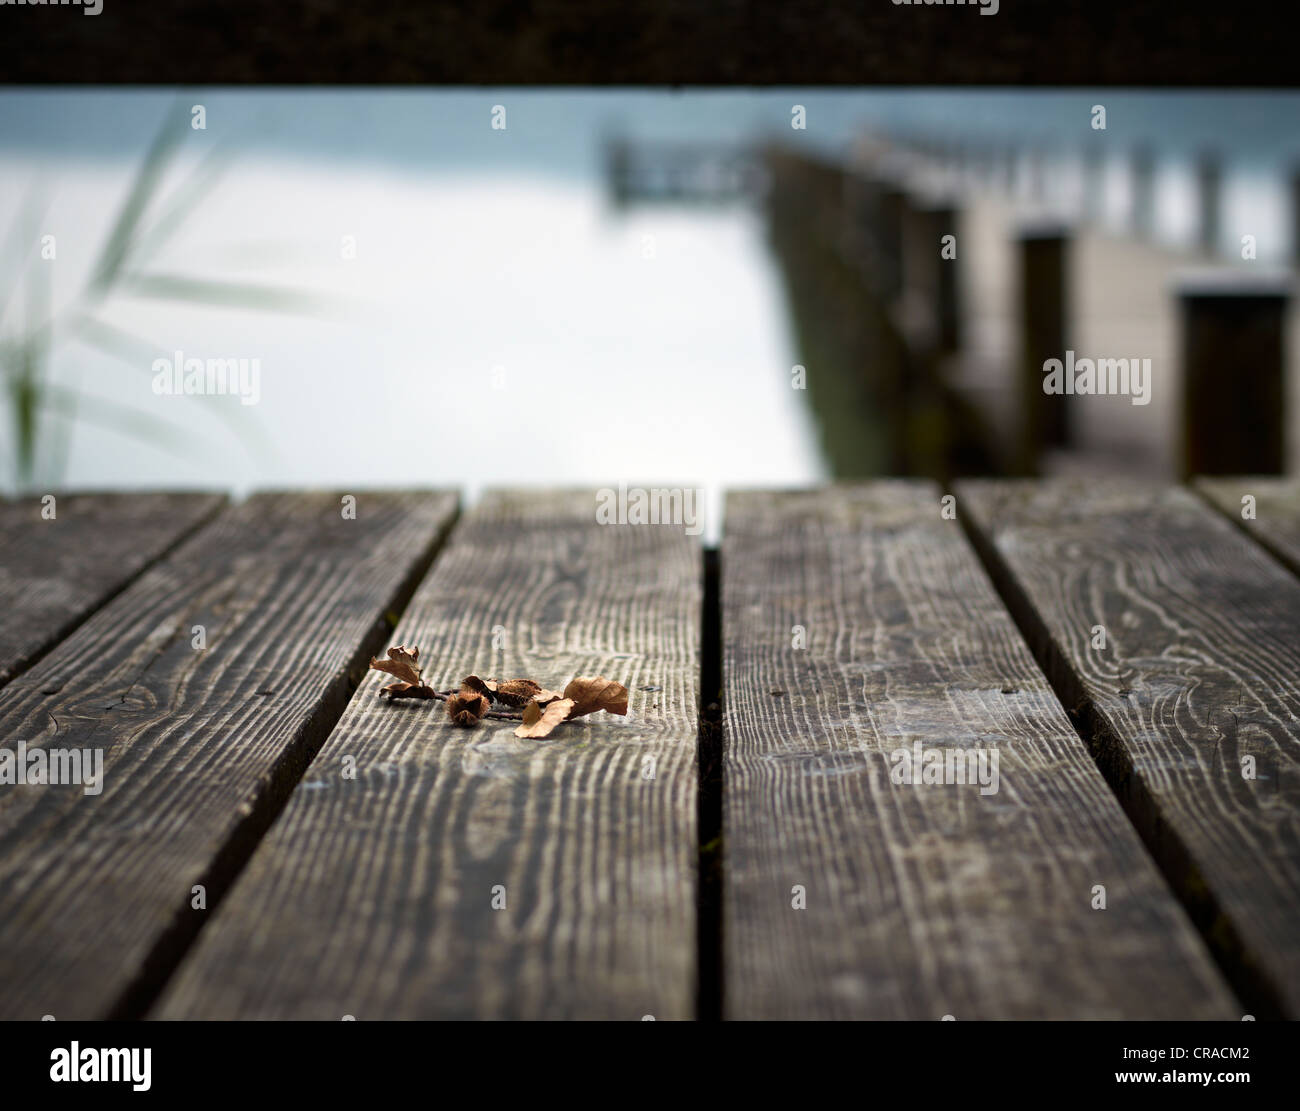 Beechnuts on the planks of a jetty in Lake Woerthsee, Bavaria, Germany, Europe - Stock Image